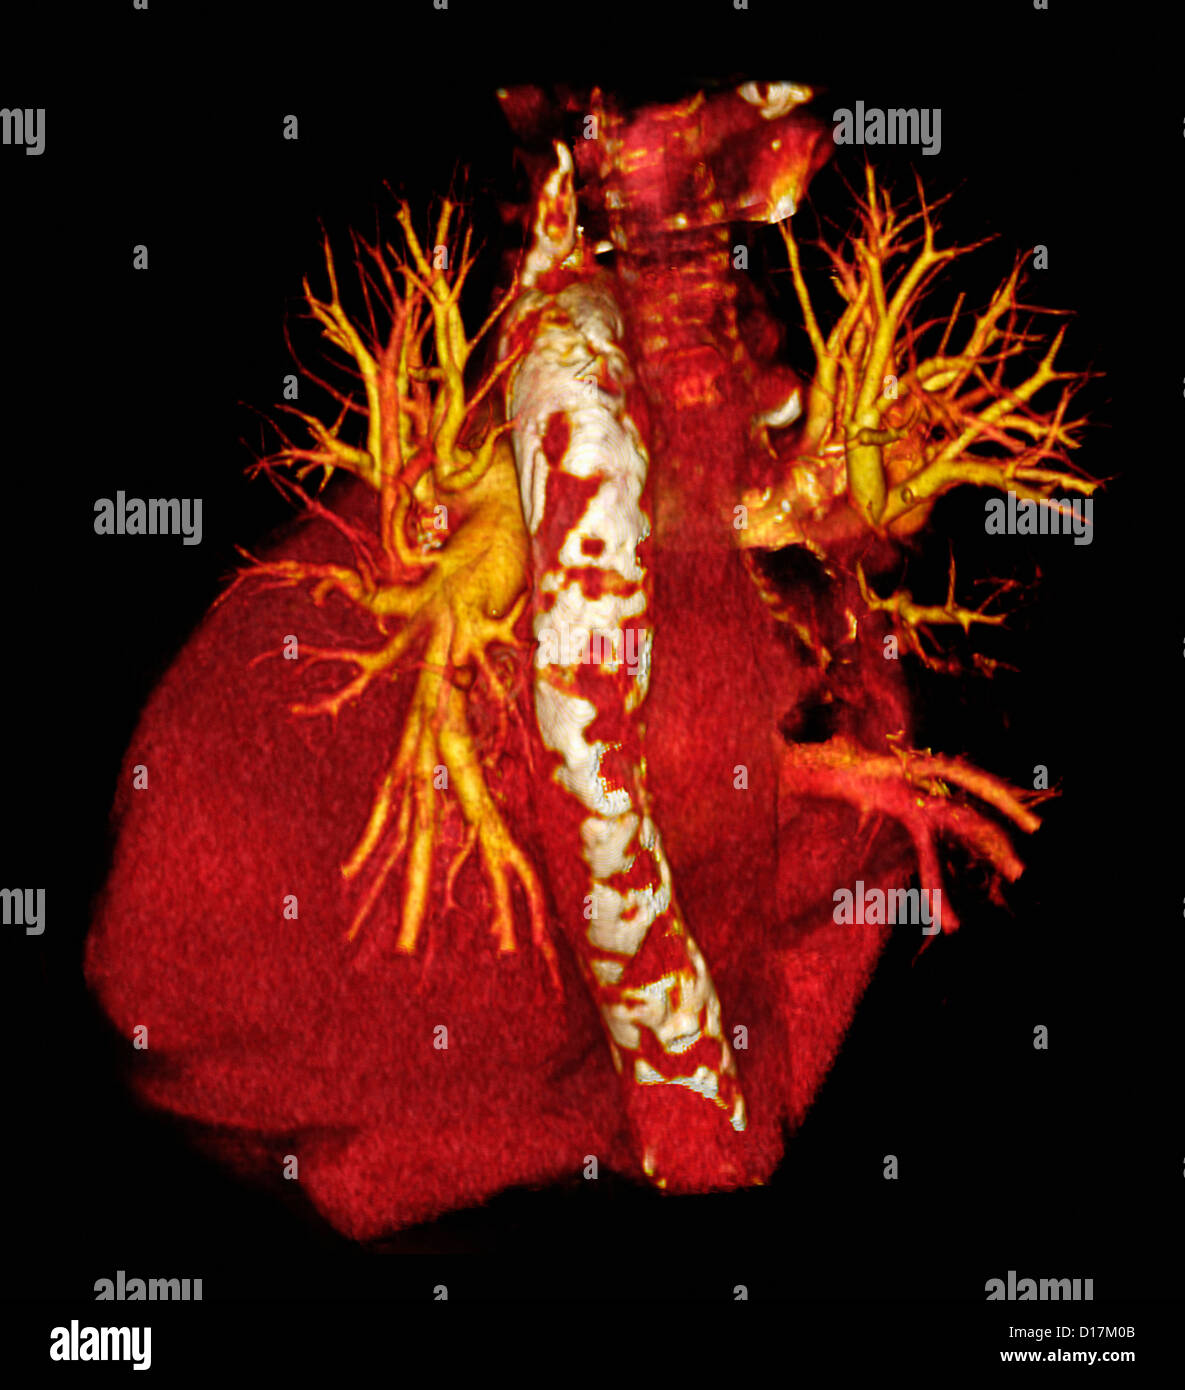 CT scan of heart with calcific aorta - Stock Image